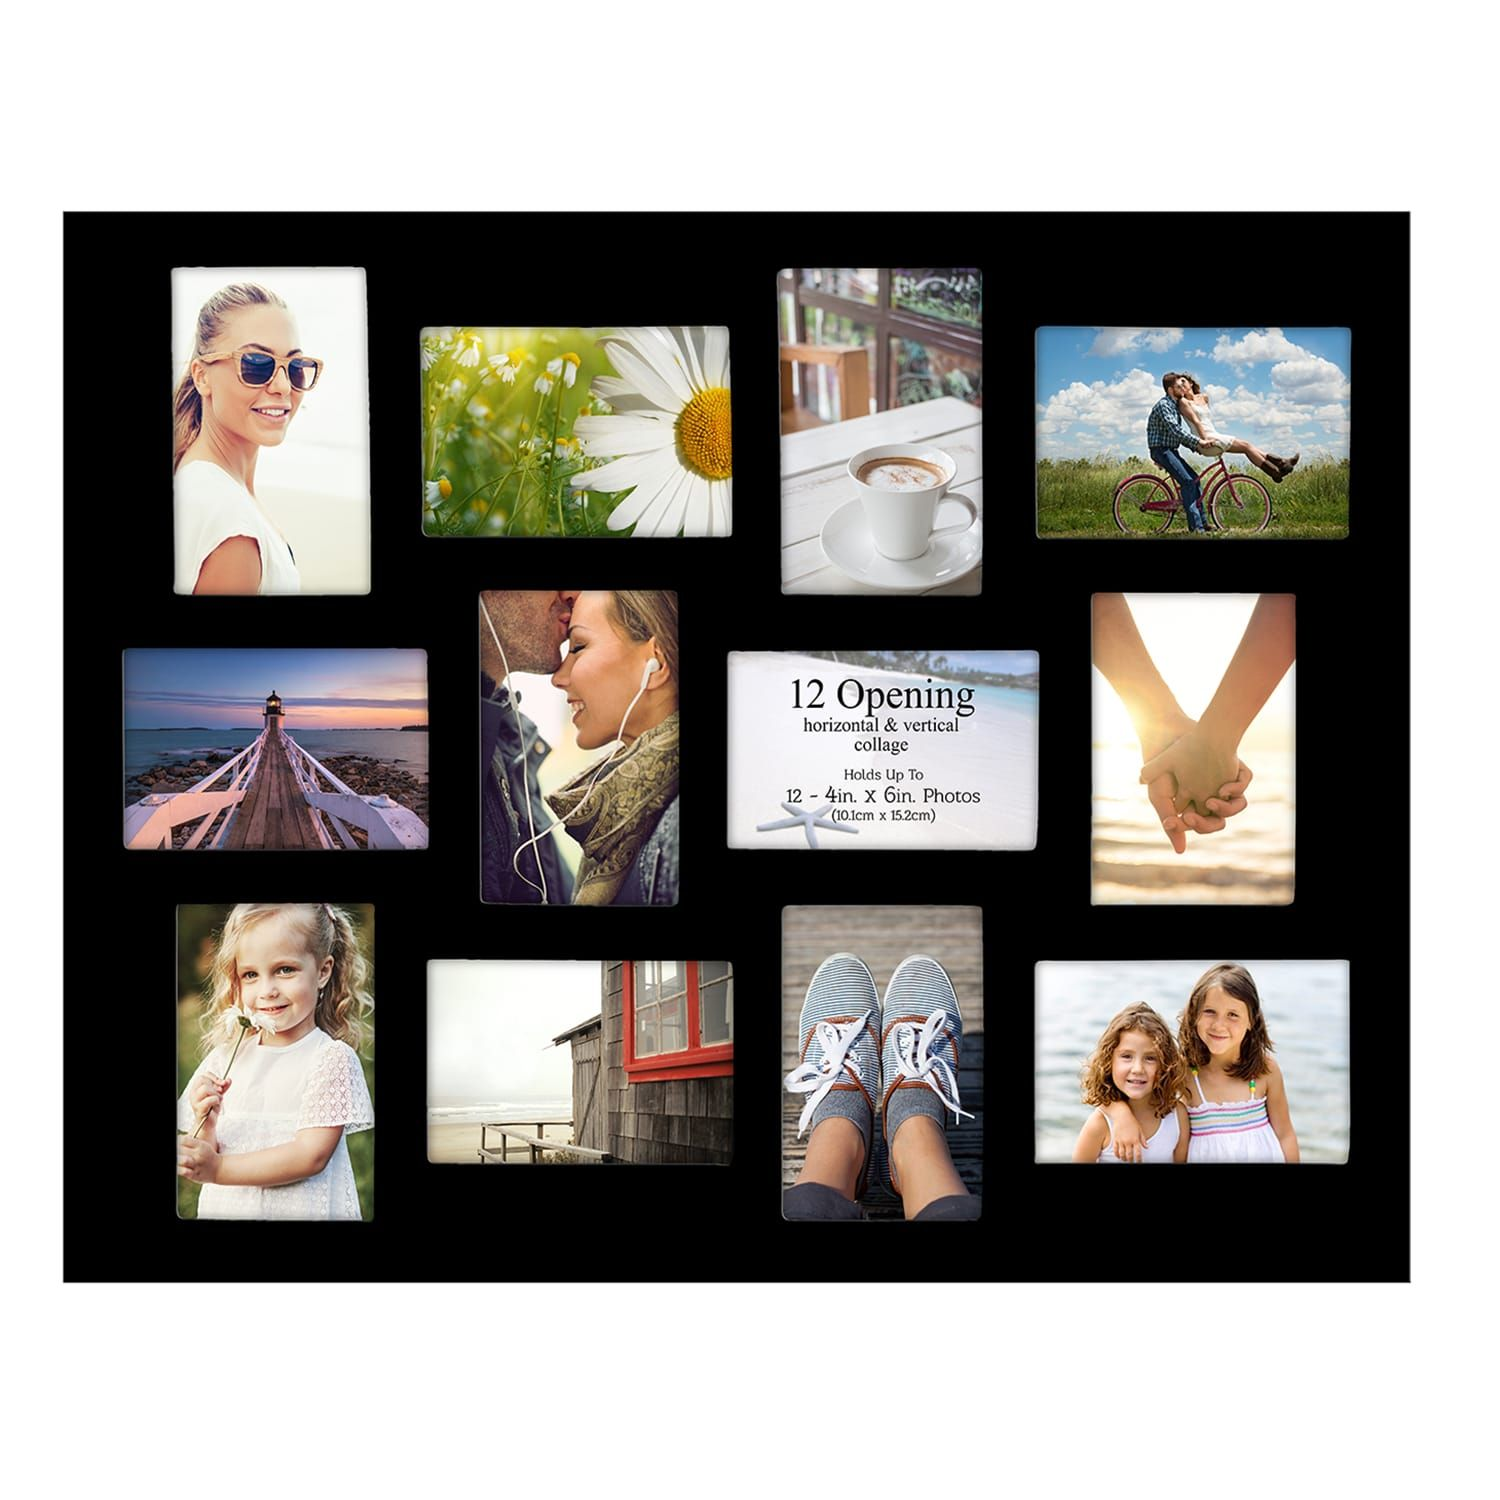 Warner 12 Opening Collage Black Frame Walmart Ca Family Pictures On Wall Living Room Wall Collage Ideas Frame Wall Collage